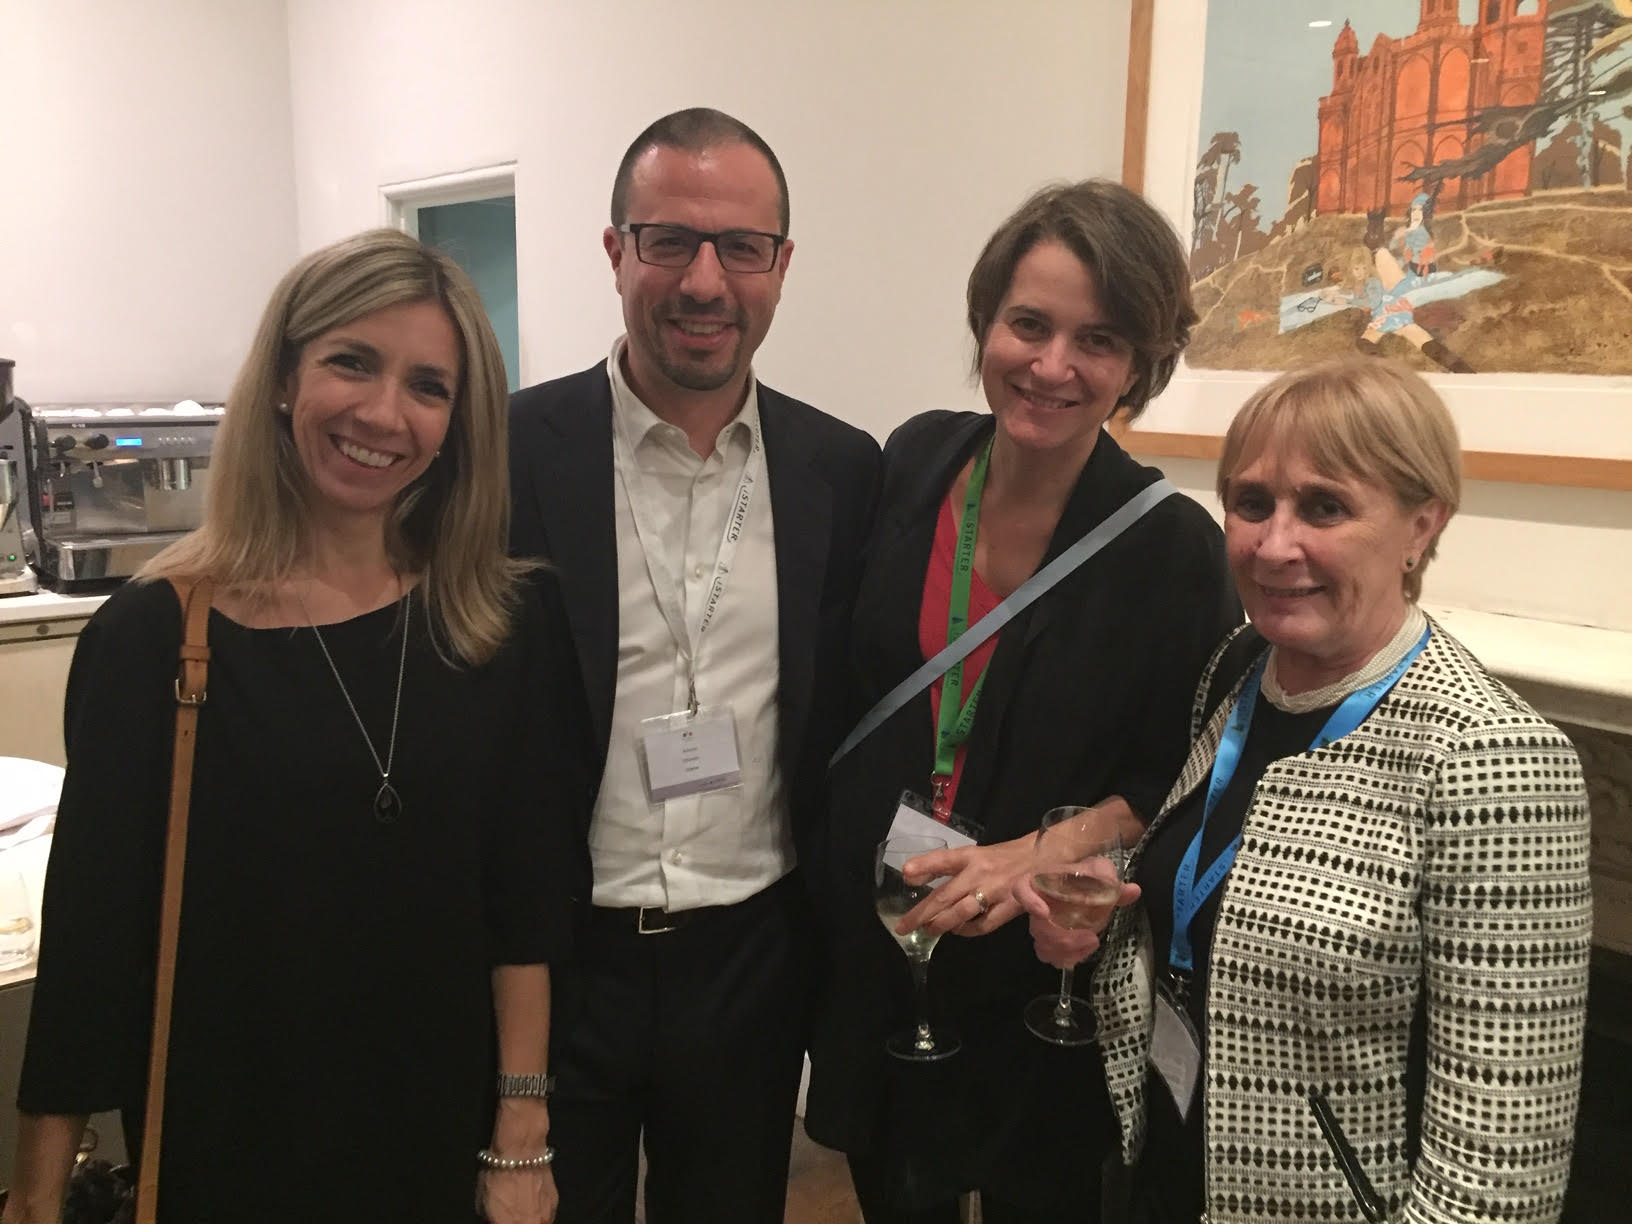 Right to left: Fausta Pavesio, Riccarda Zezza, Antonio Chiarello, Manuela Andaloro attending the annual iStarter event in London